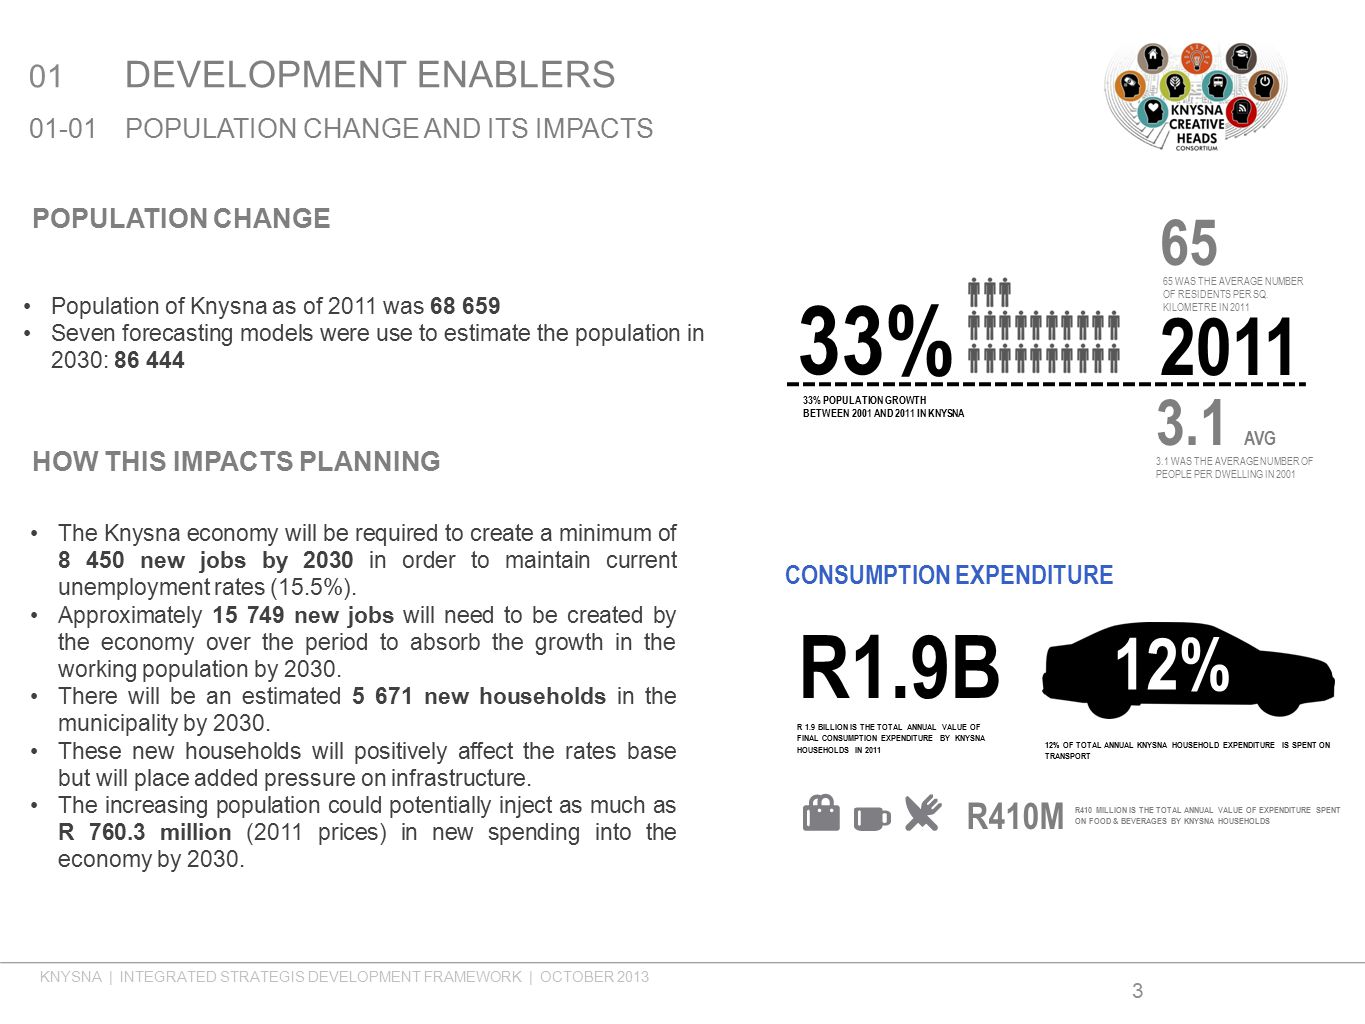 3 01 DEVELOPMENT ENABLERS 01-01POPULATION CHANGE AND ITS IMPACTS POPULATION CHANGE Population of Knysna as of 2011 was 68 659 Seven forecasting models were use to estimate the population in 2030: 86 444 33% 2011 65 65 WAS THE AVERAGE NUMBER OF RESIDENTS PER SQ.